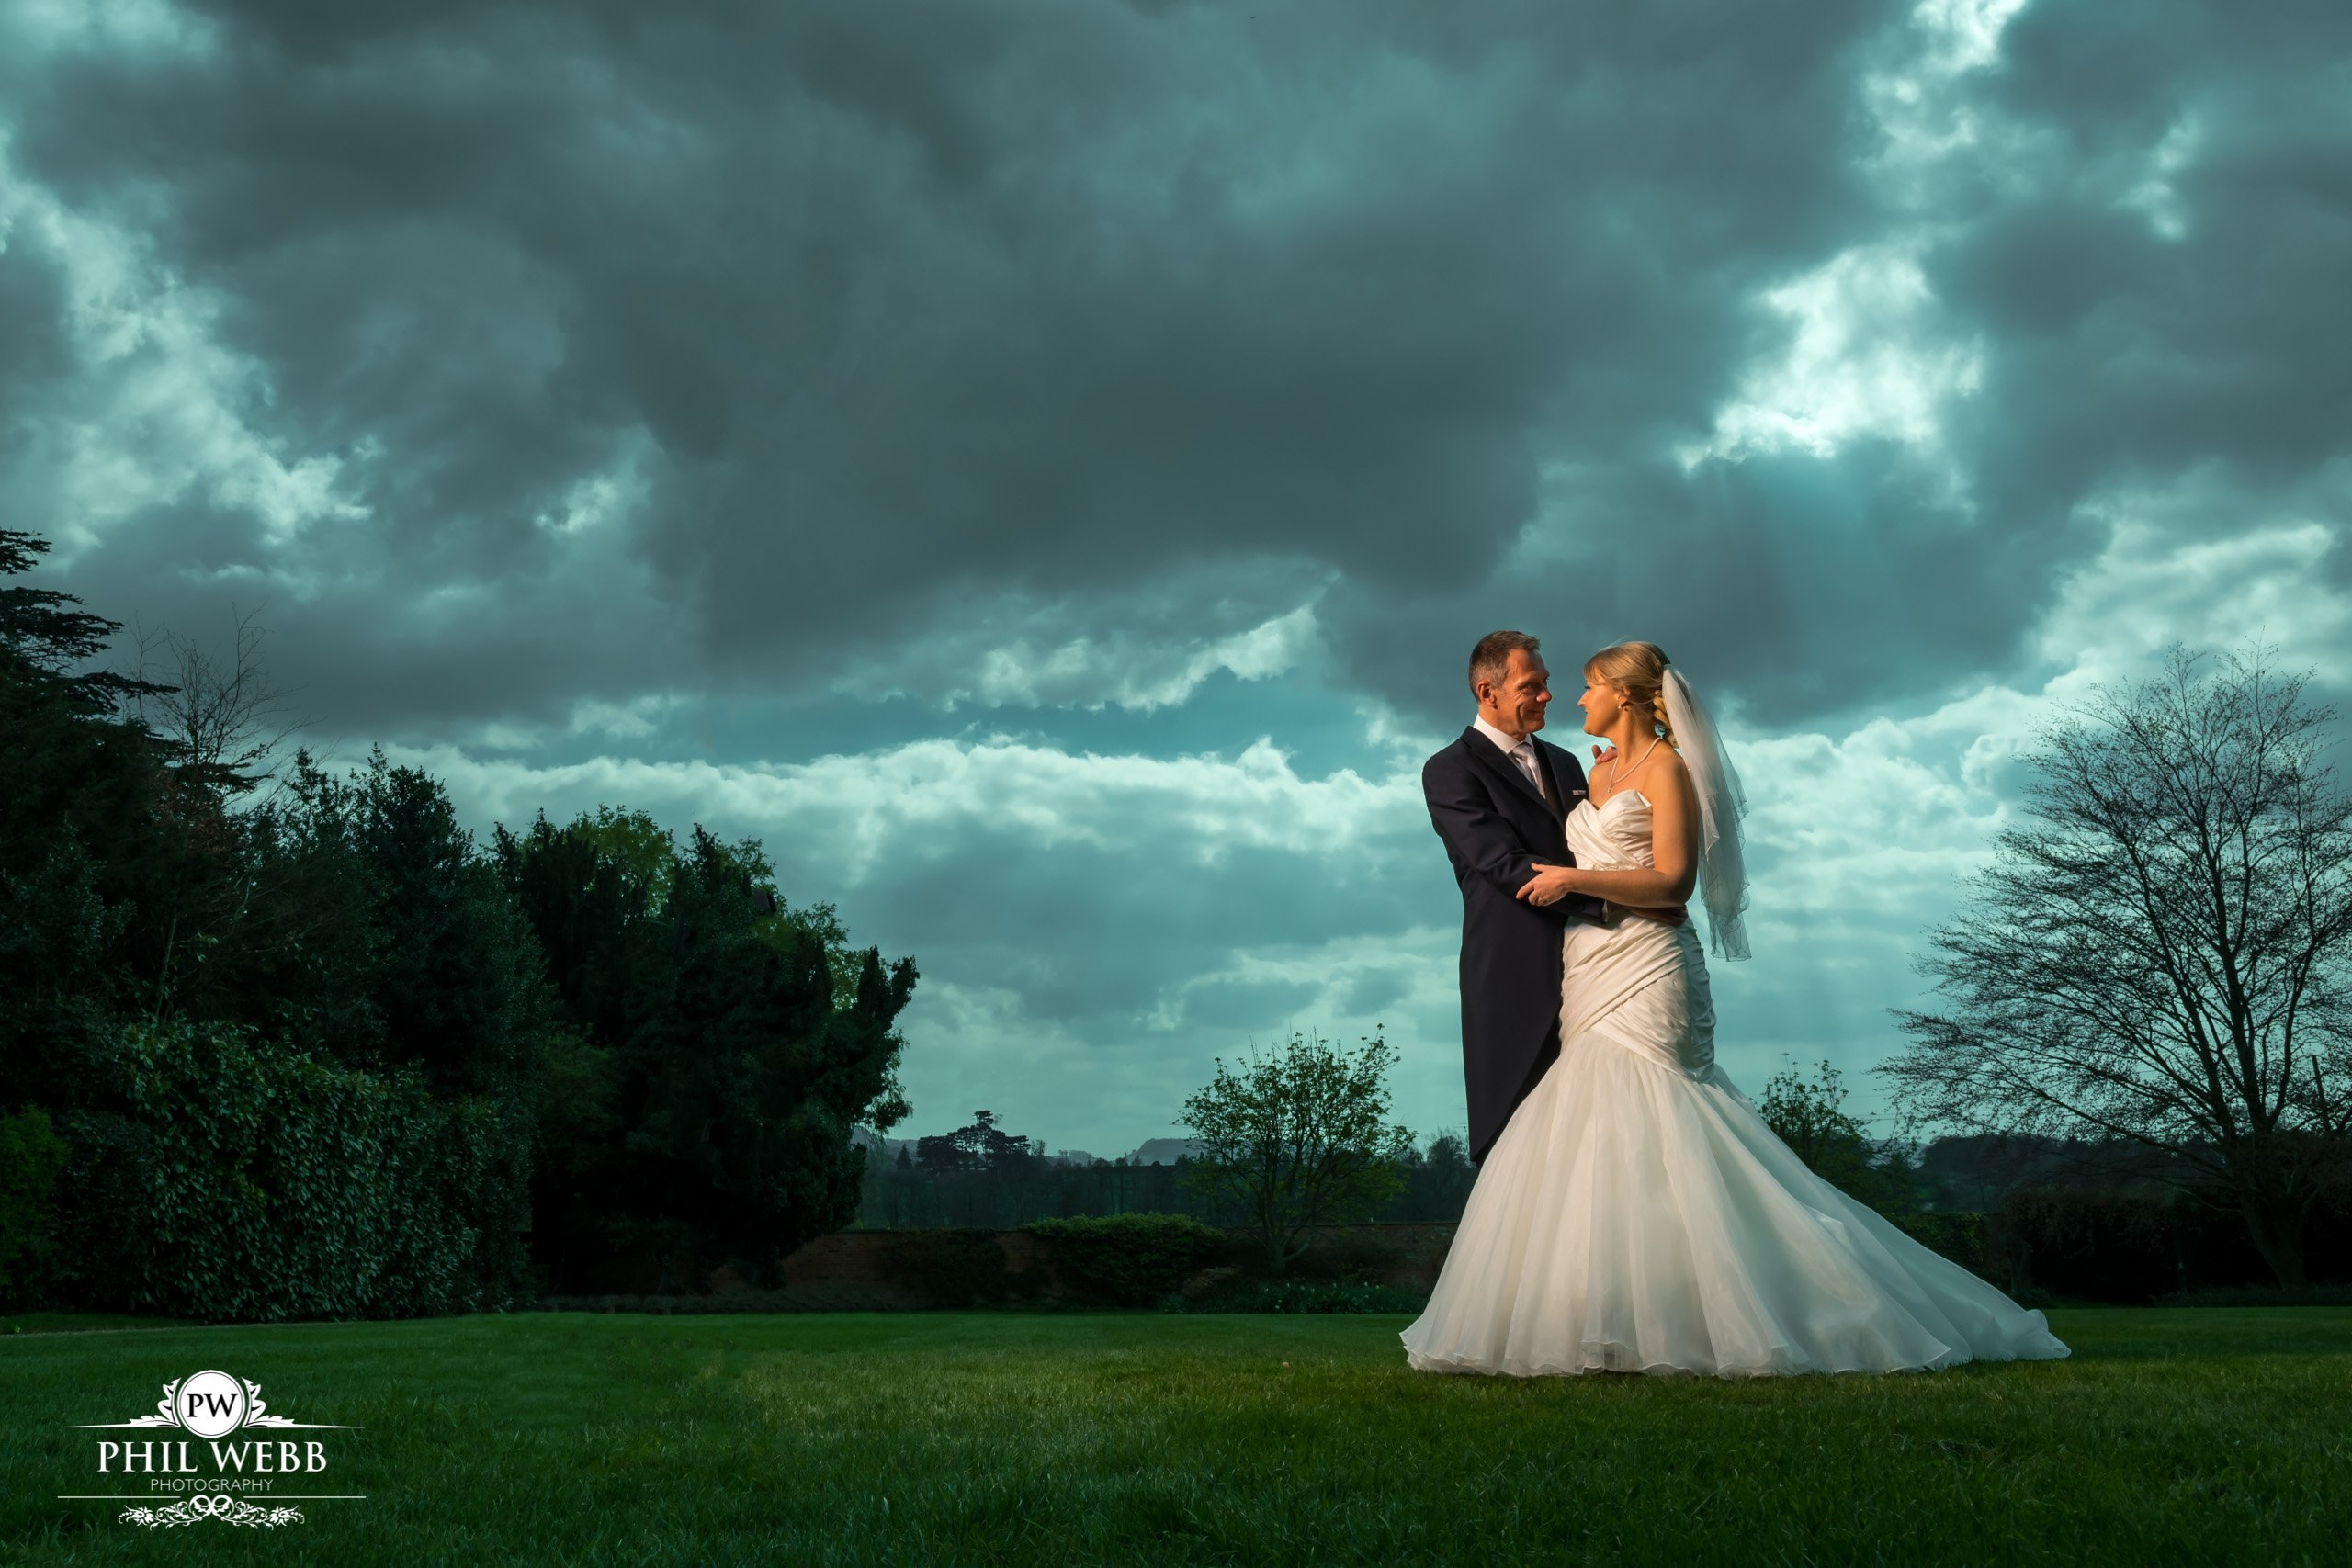 Tracey & Marc's Wedding - Stonehouse Court Hotel